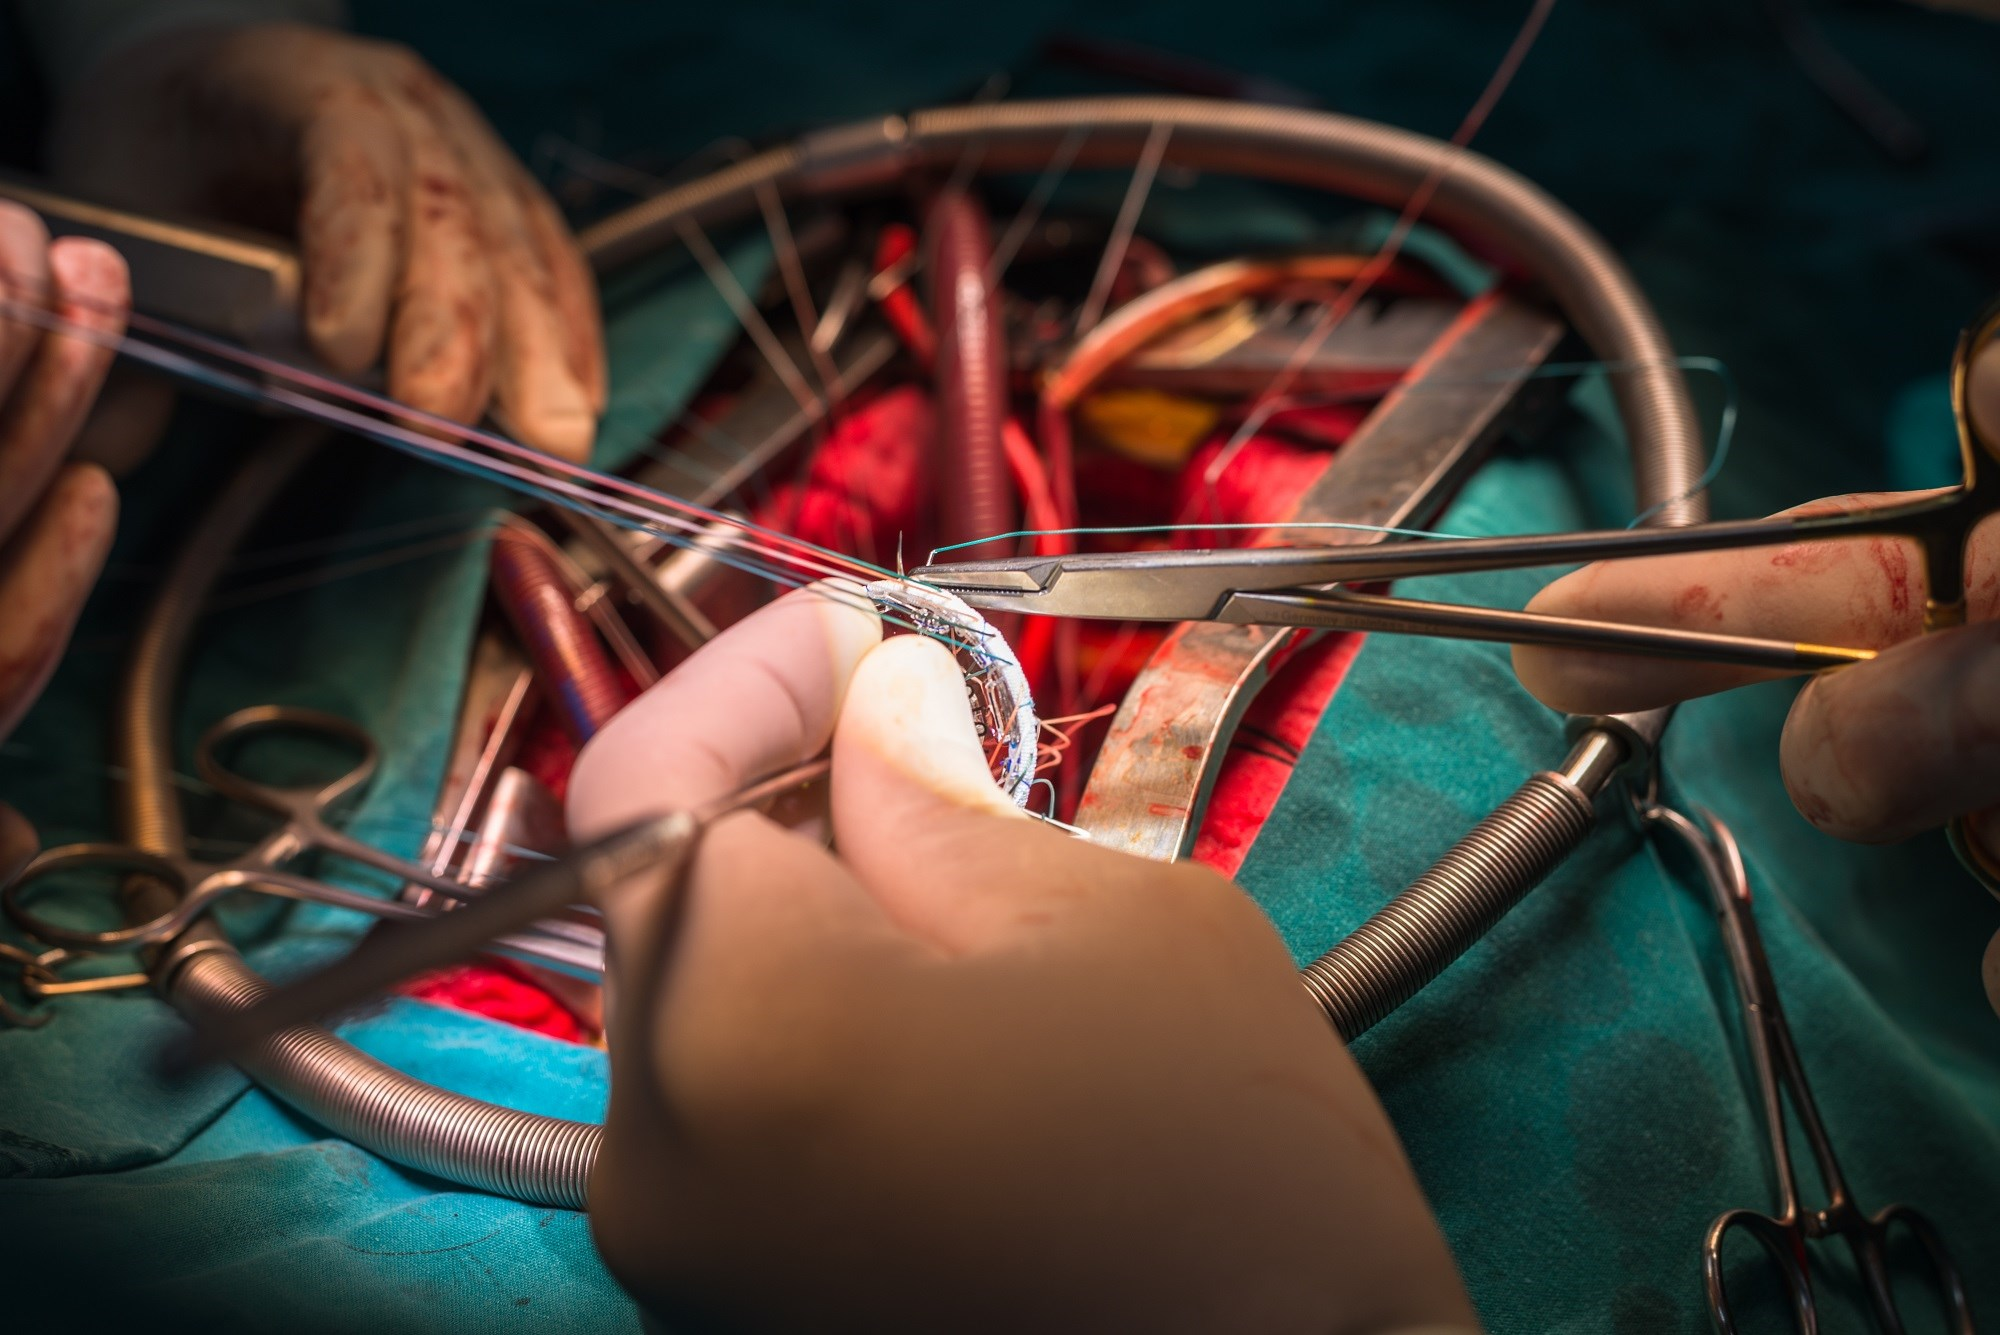 Safety of Immediate Sildenafil Administration After Mitral Valve Surgery